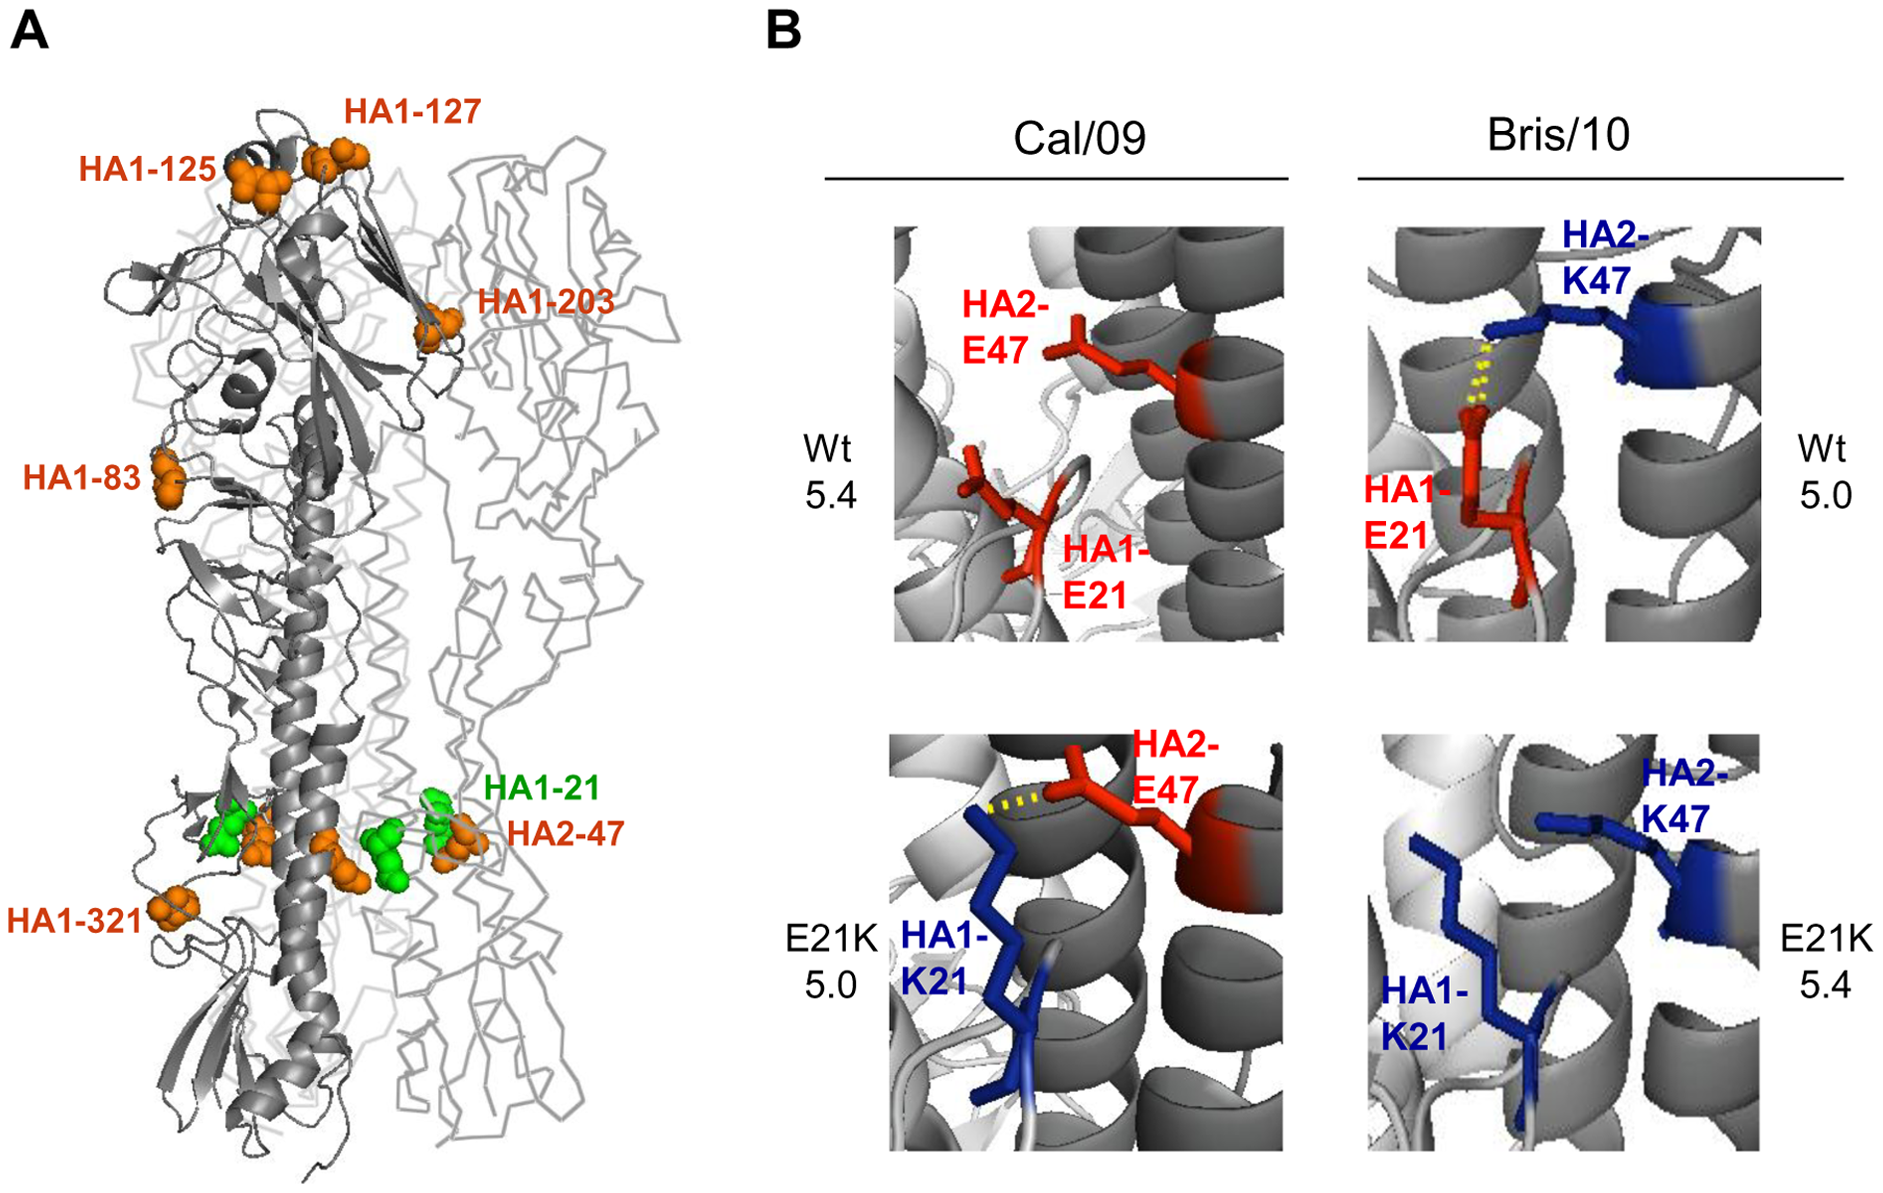 An inter-monomer interaction between the HA residues HA1-21 and HA2-47 determines the threshold pH for fusion.